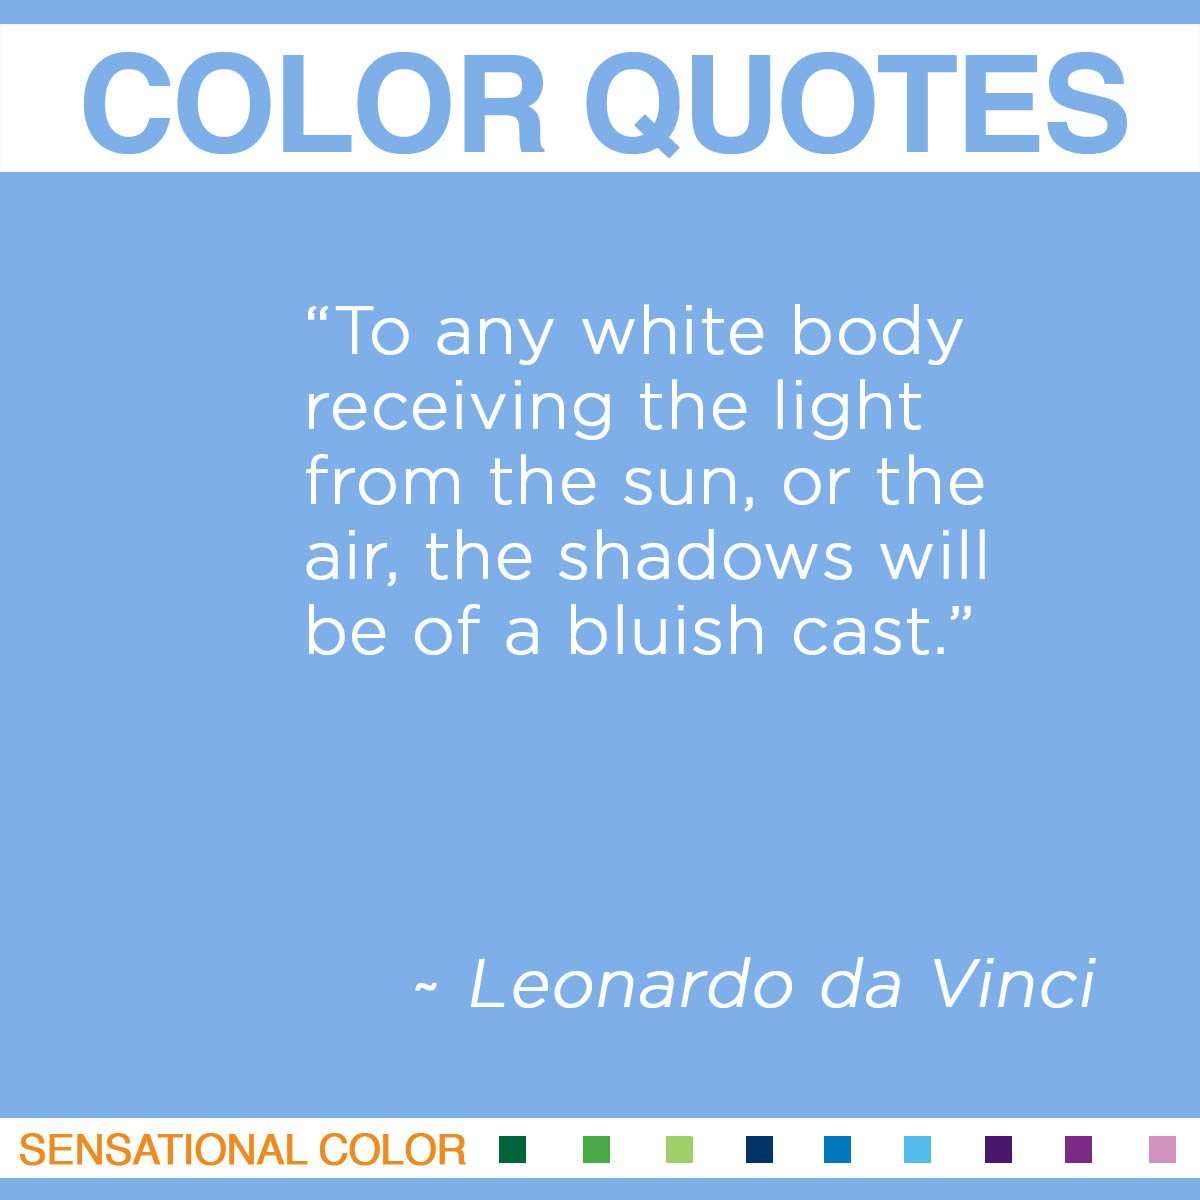 """To any white body receiving the light from the sun, or the air, the shadows will be of a bluish cast."" - Leonardo da Vinci"